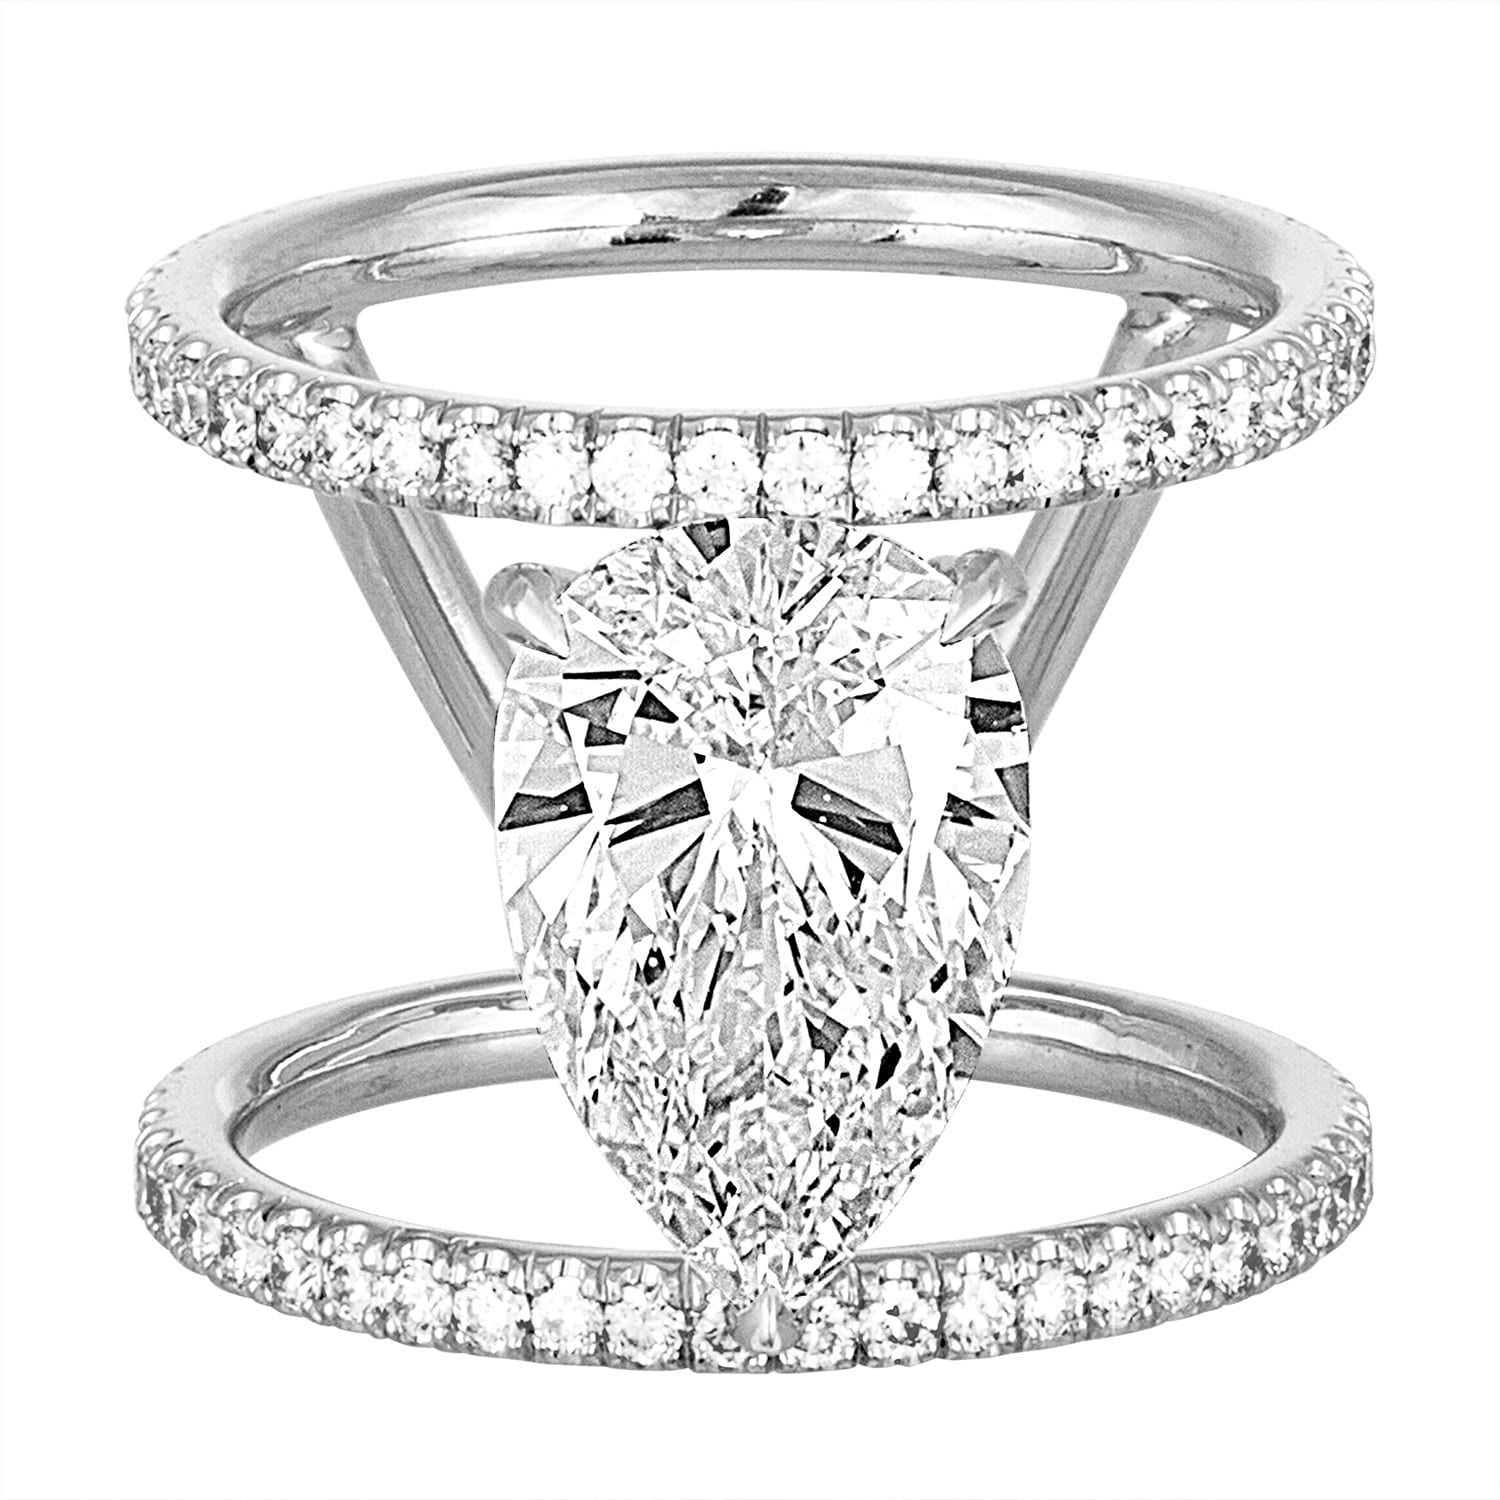 diamond ctw antique rings engagement halo vintage k miadonna settings caymancode white gold ring in